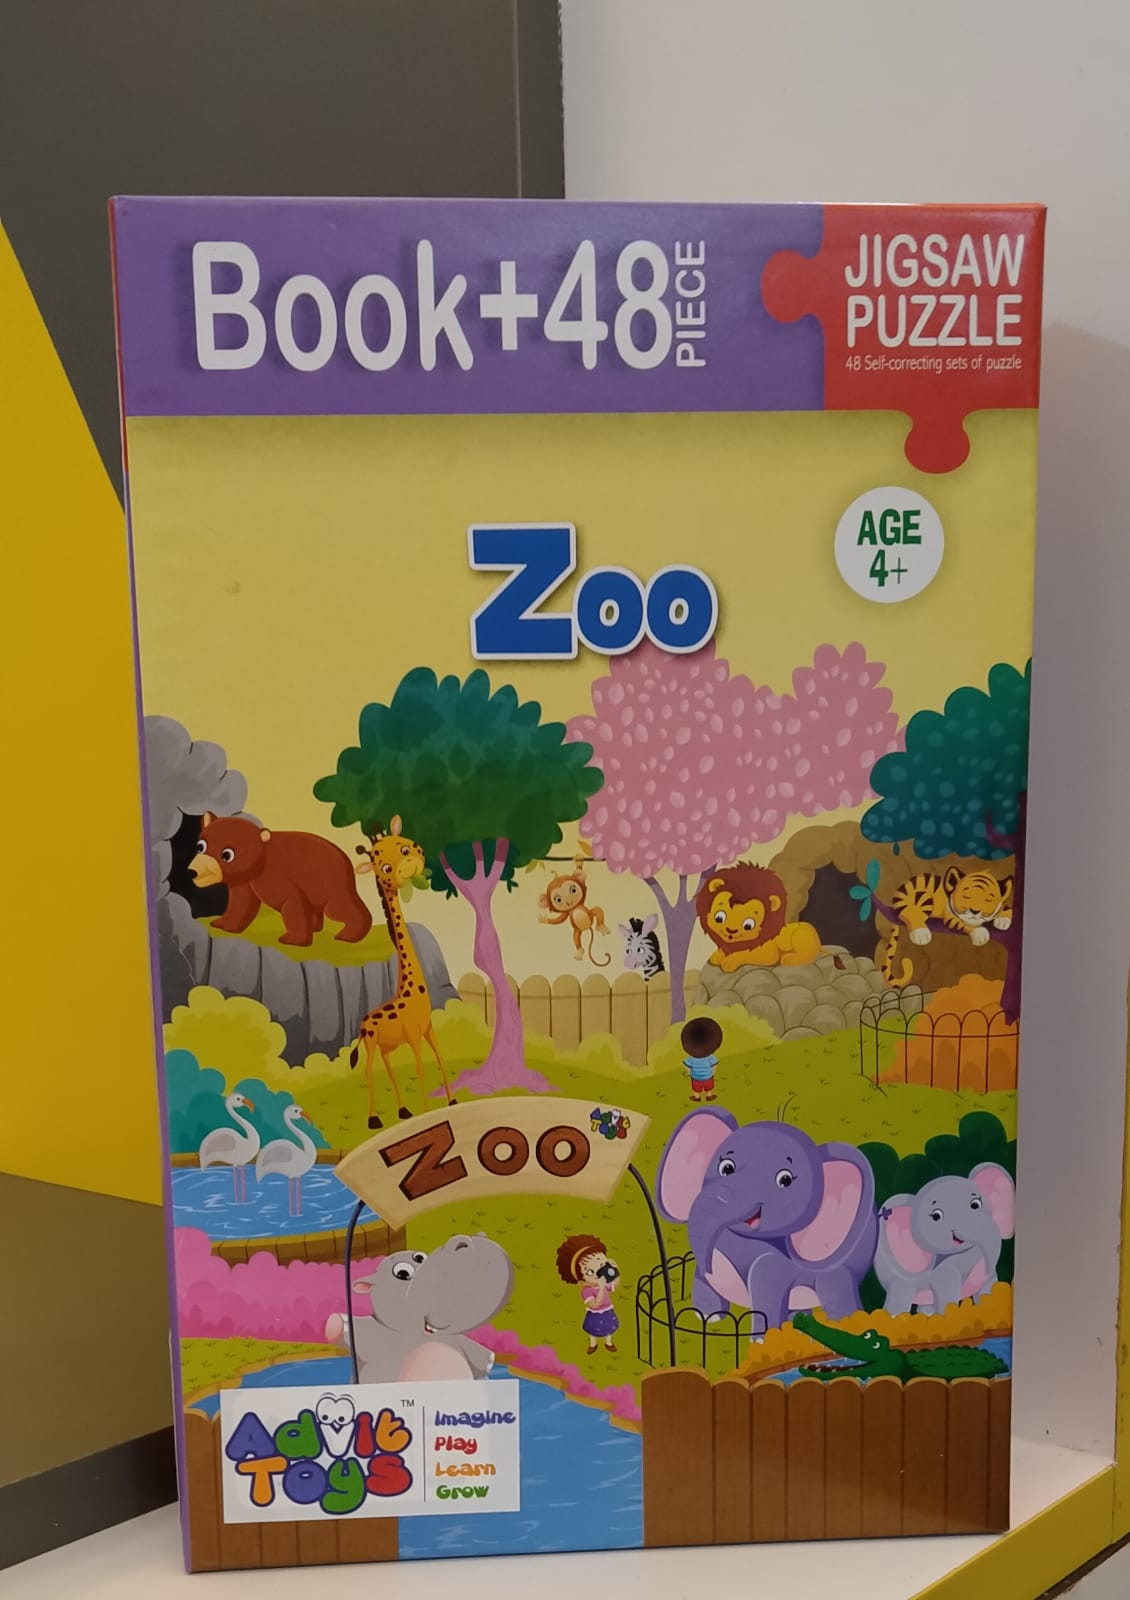 ZOO JIGSAW PUZZLE ( BOOK + 48 PIECE AGE 4 + )